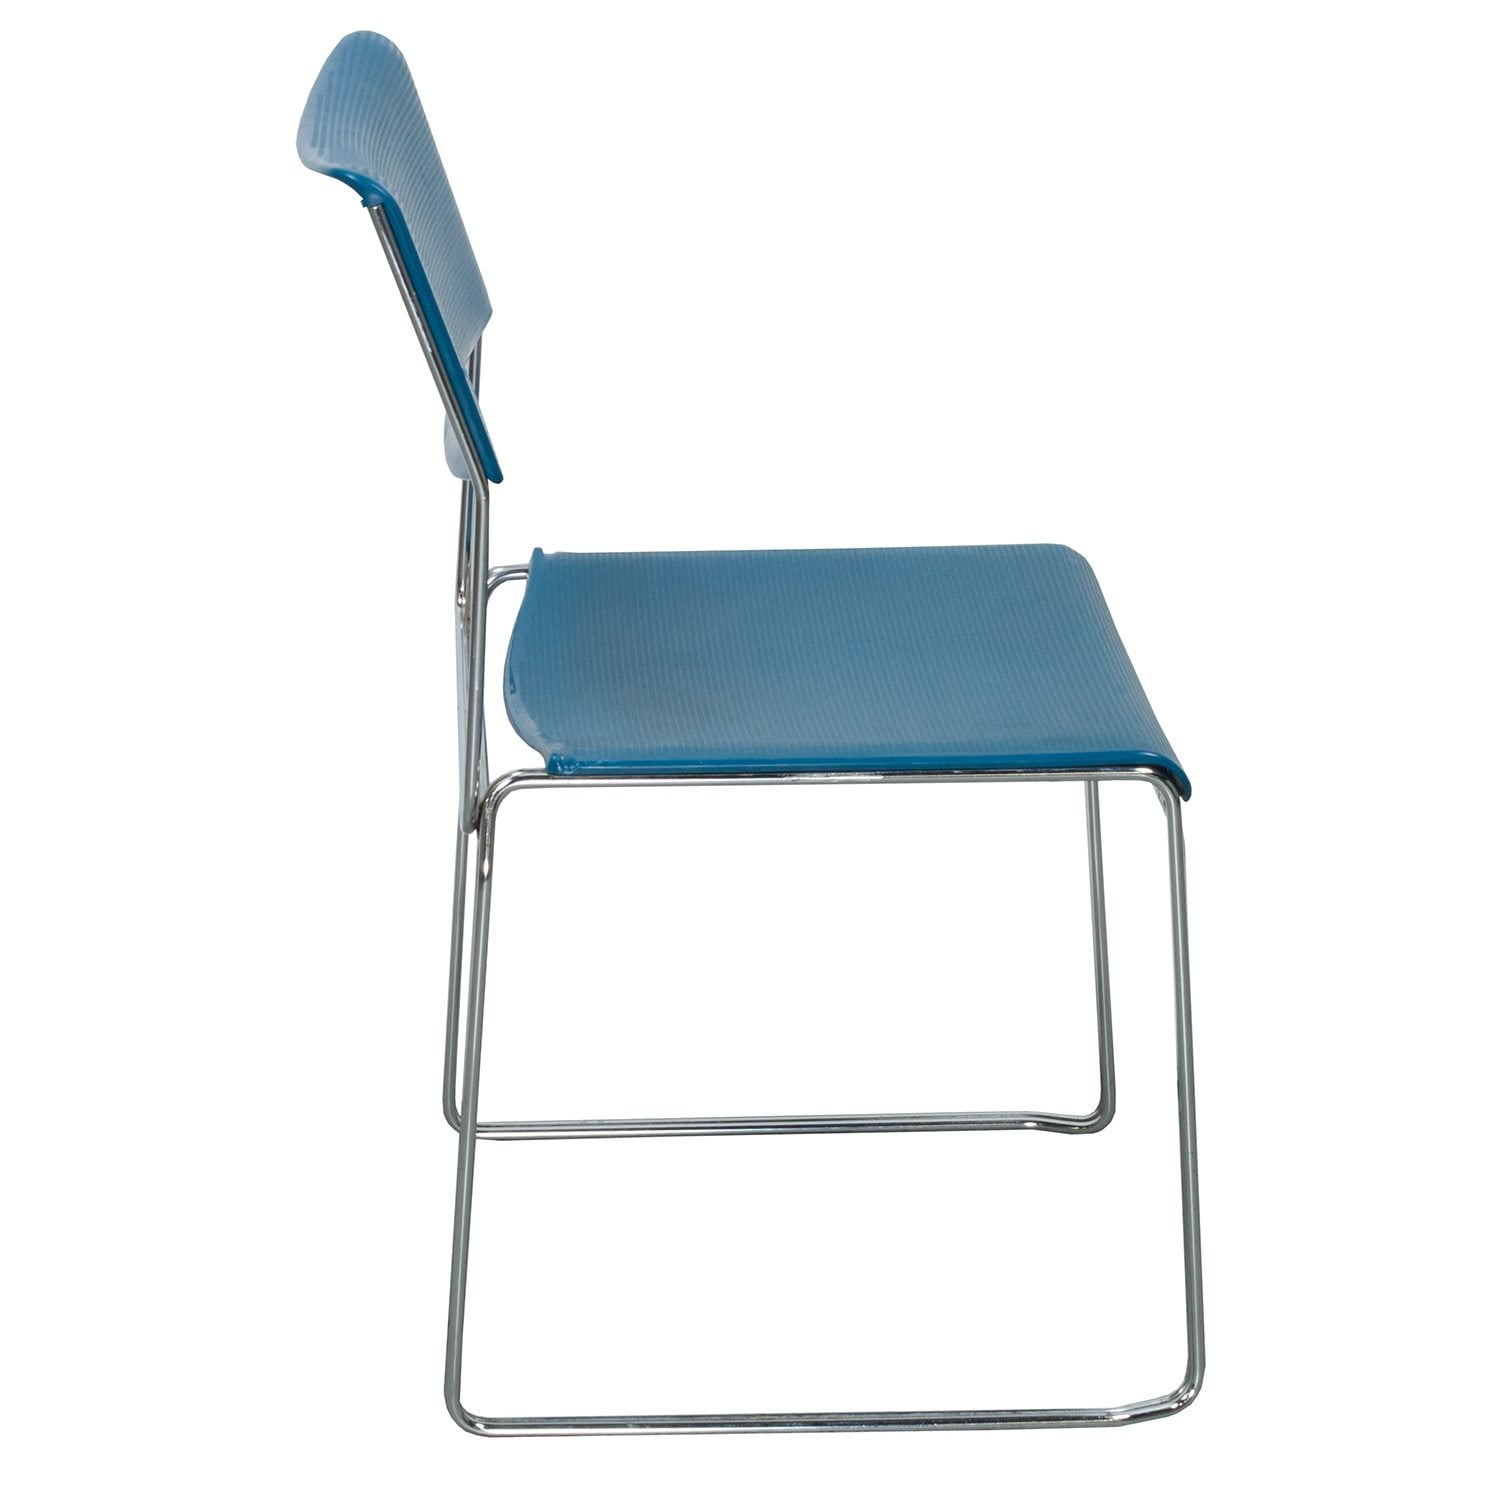 teal office chair rising chairs for the elderly comforto used stack national